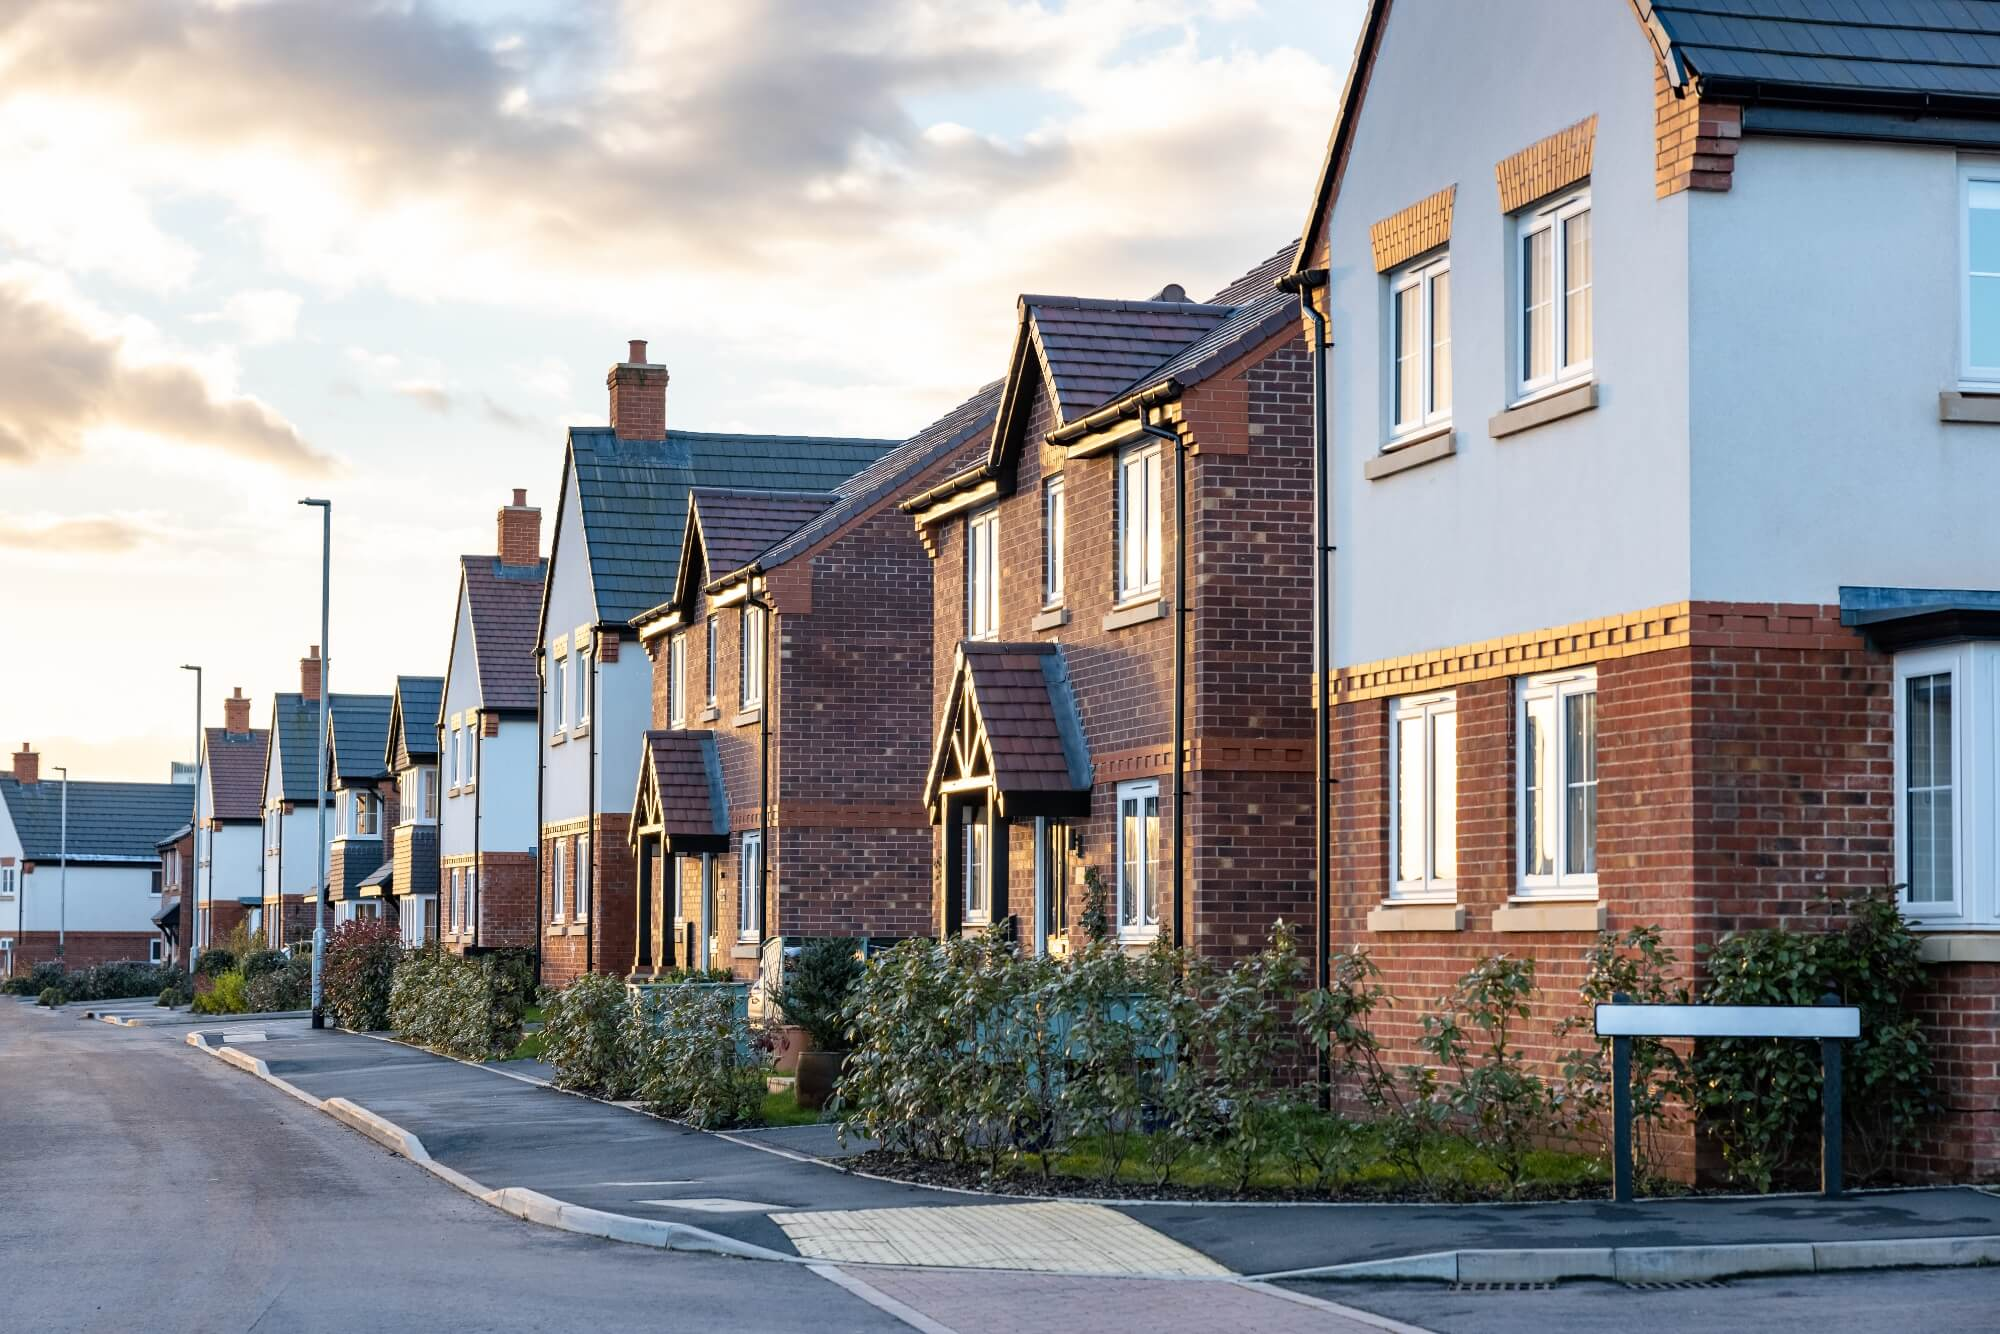 detached new houses without misty windows in bristol